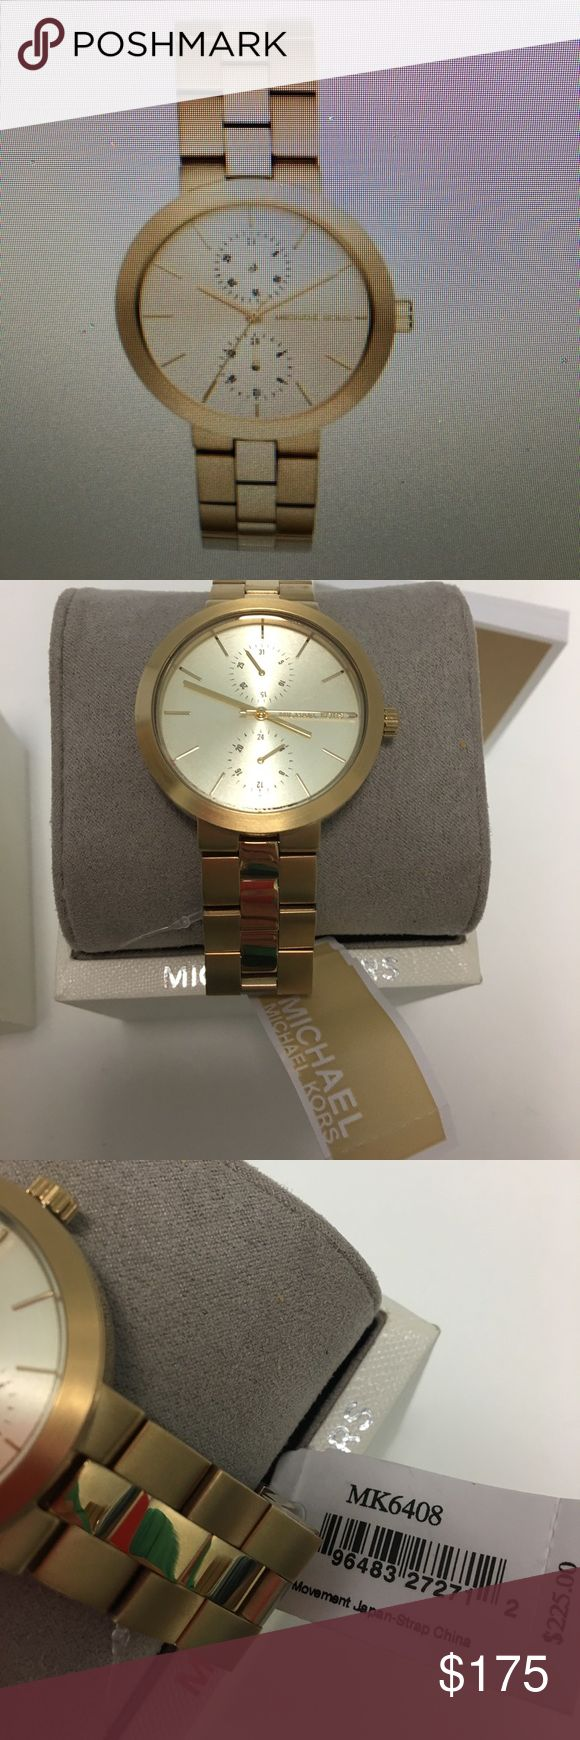 ⌚️NIB MICHAEL KORS WATCH ⌚️ Gold tone stainless steel bracelet round case 39 mm gold tone Multiplan to know Dale with stick indices three hands to subdials and Michael Kors logo quartz movement water resistant Michael Kors Accessories Watches